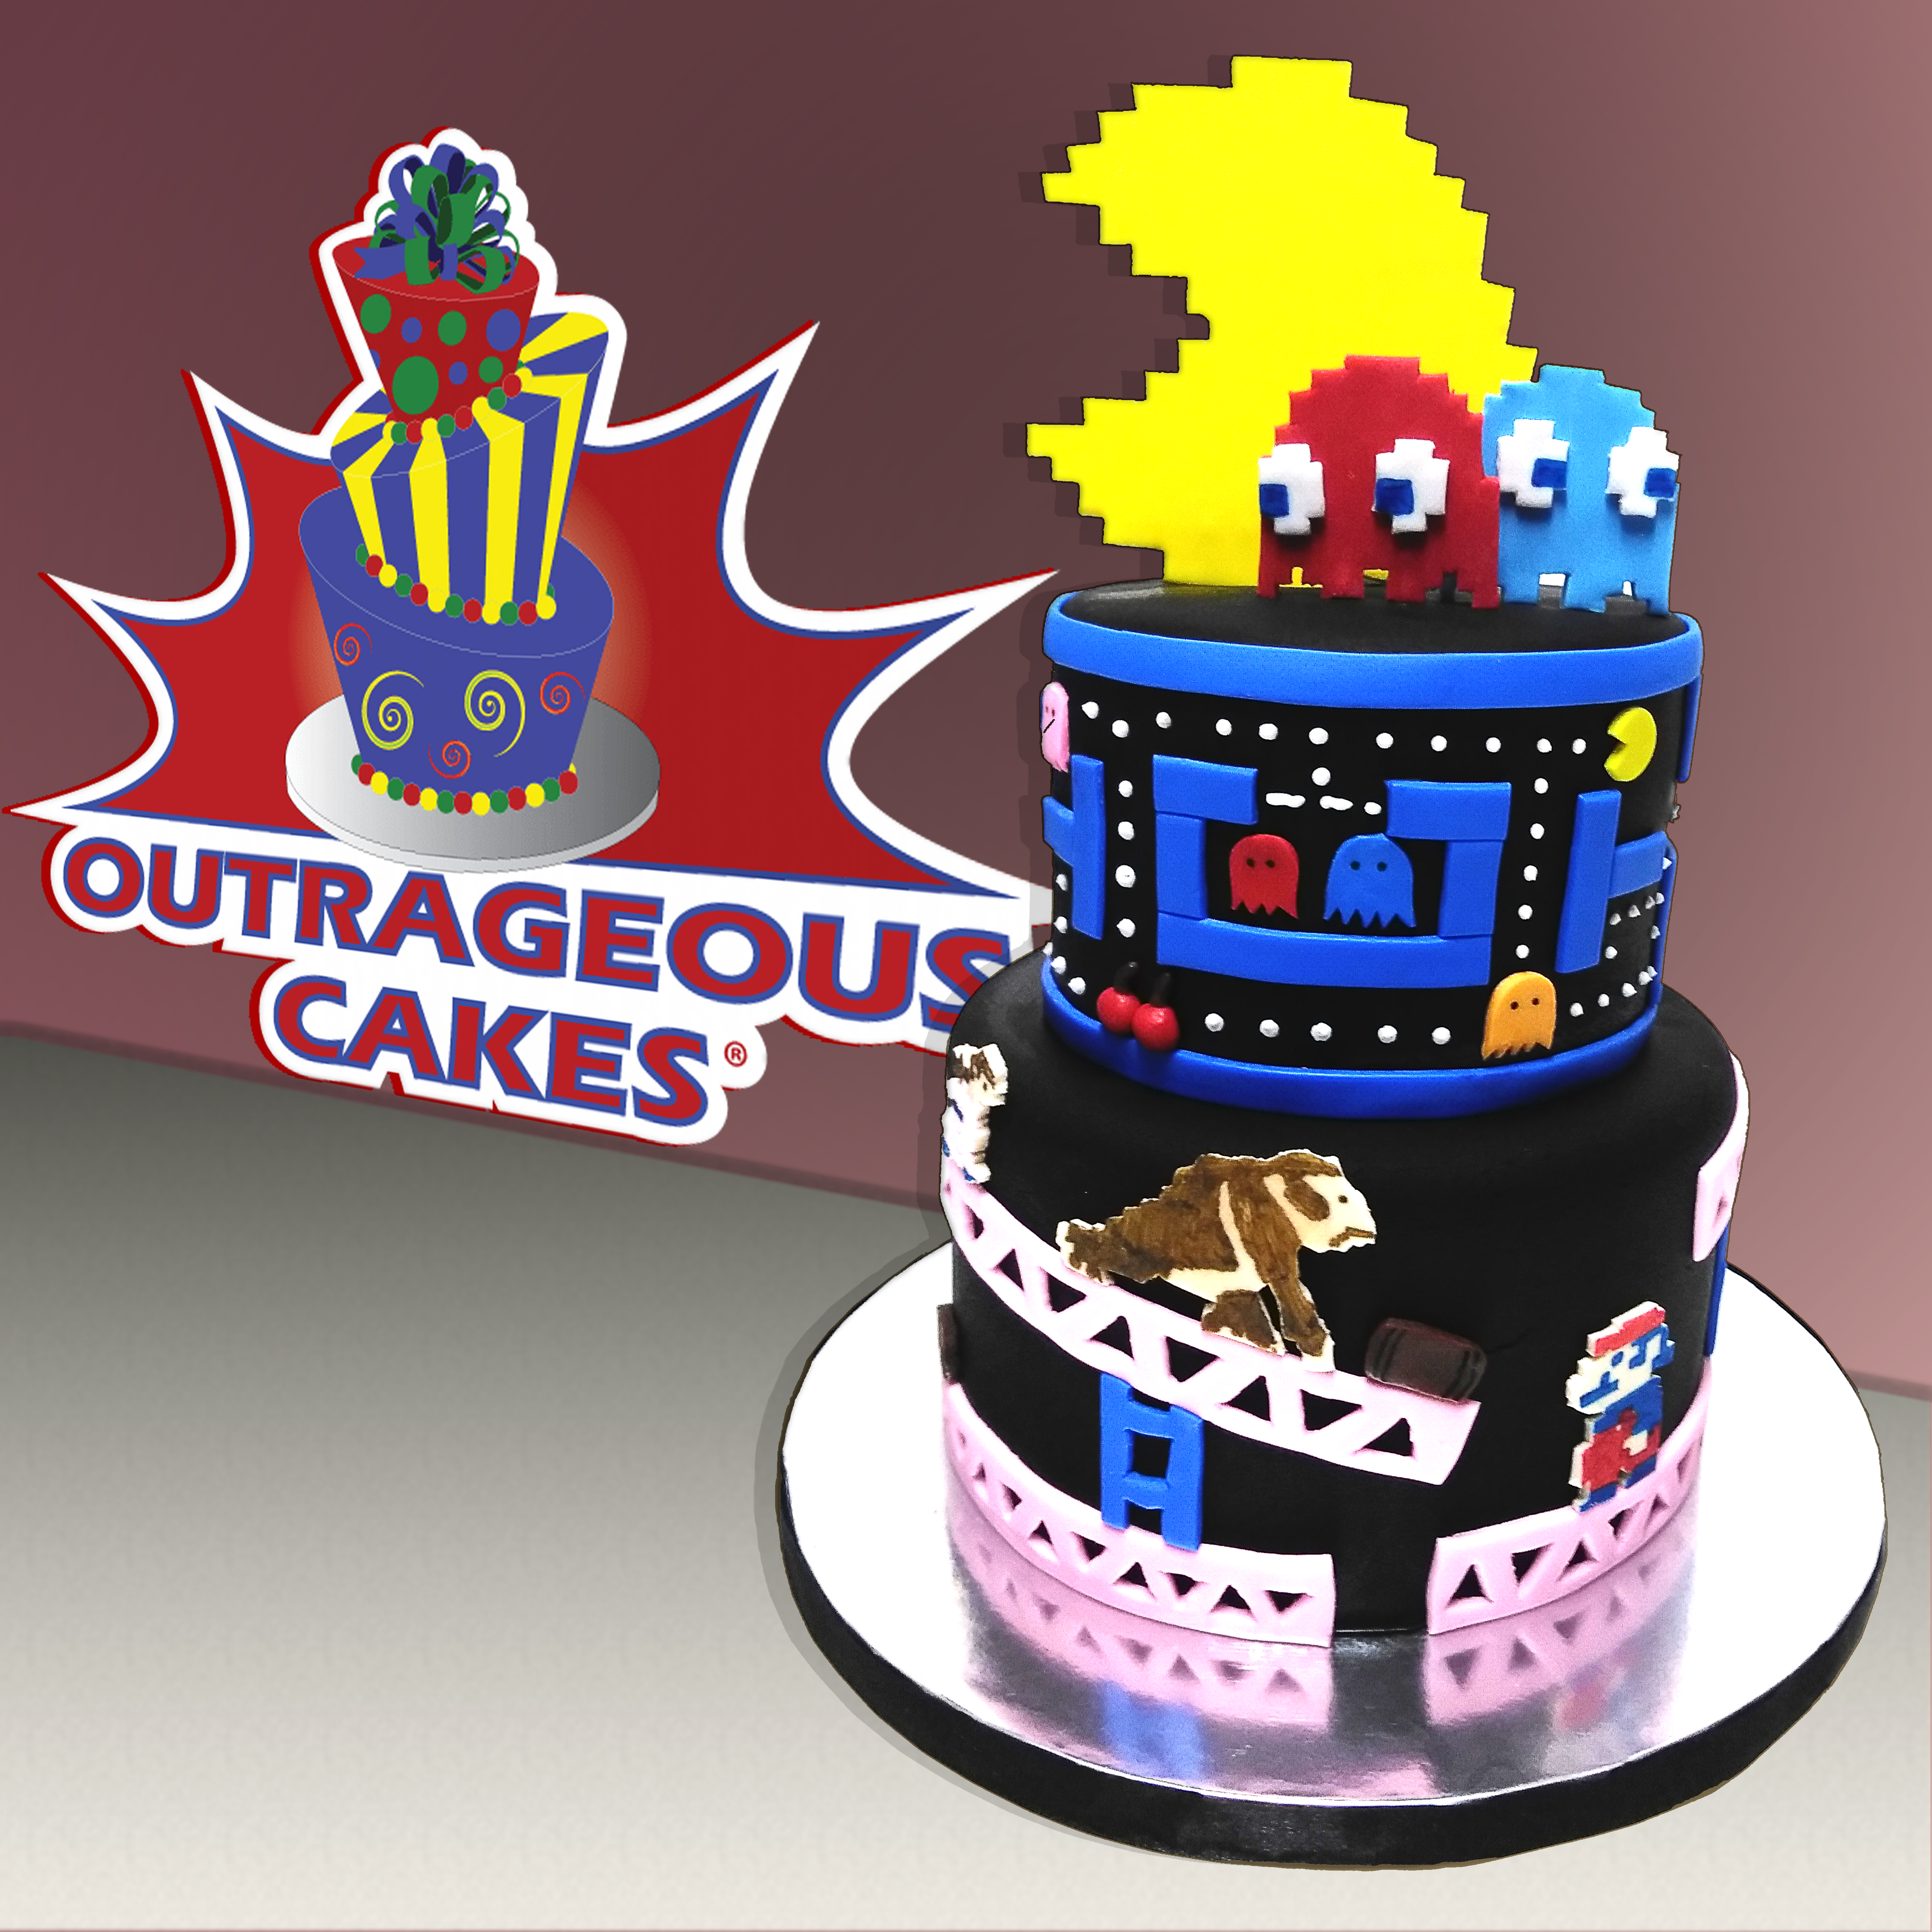 Outstanding Outrageous Cakes Tampa Bakery Adult Burthday Cakes Personalised Birthday Cards Veneteletsinfo